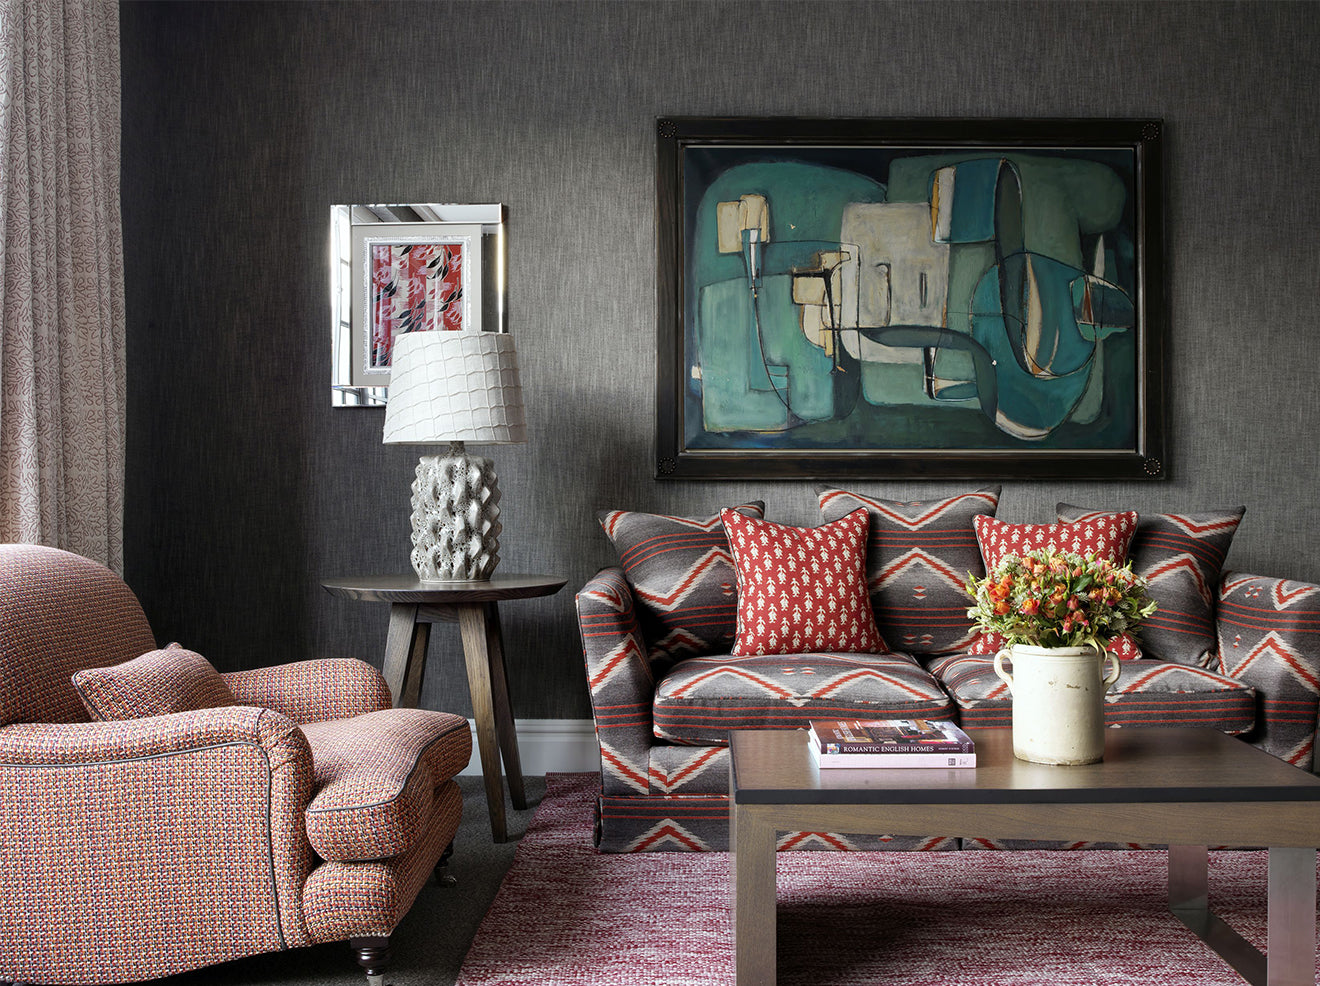 Soho Hotel London boutique suite with printed sofa